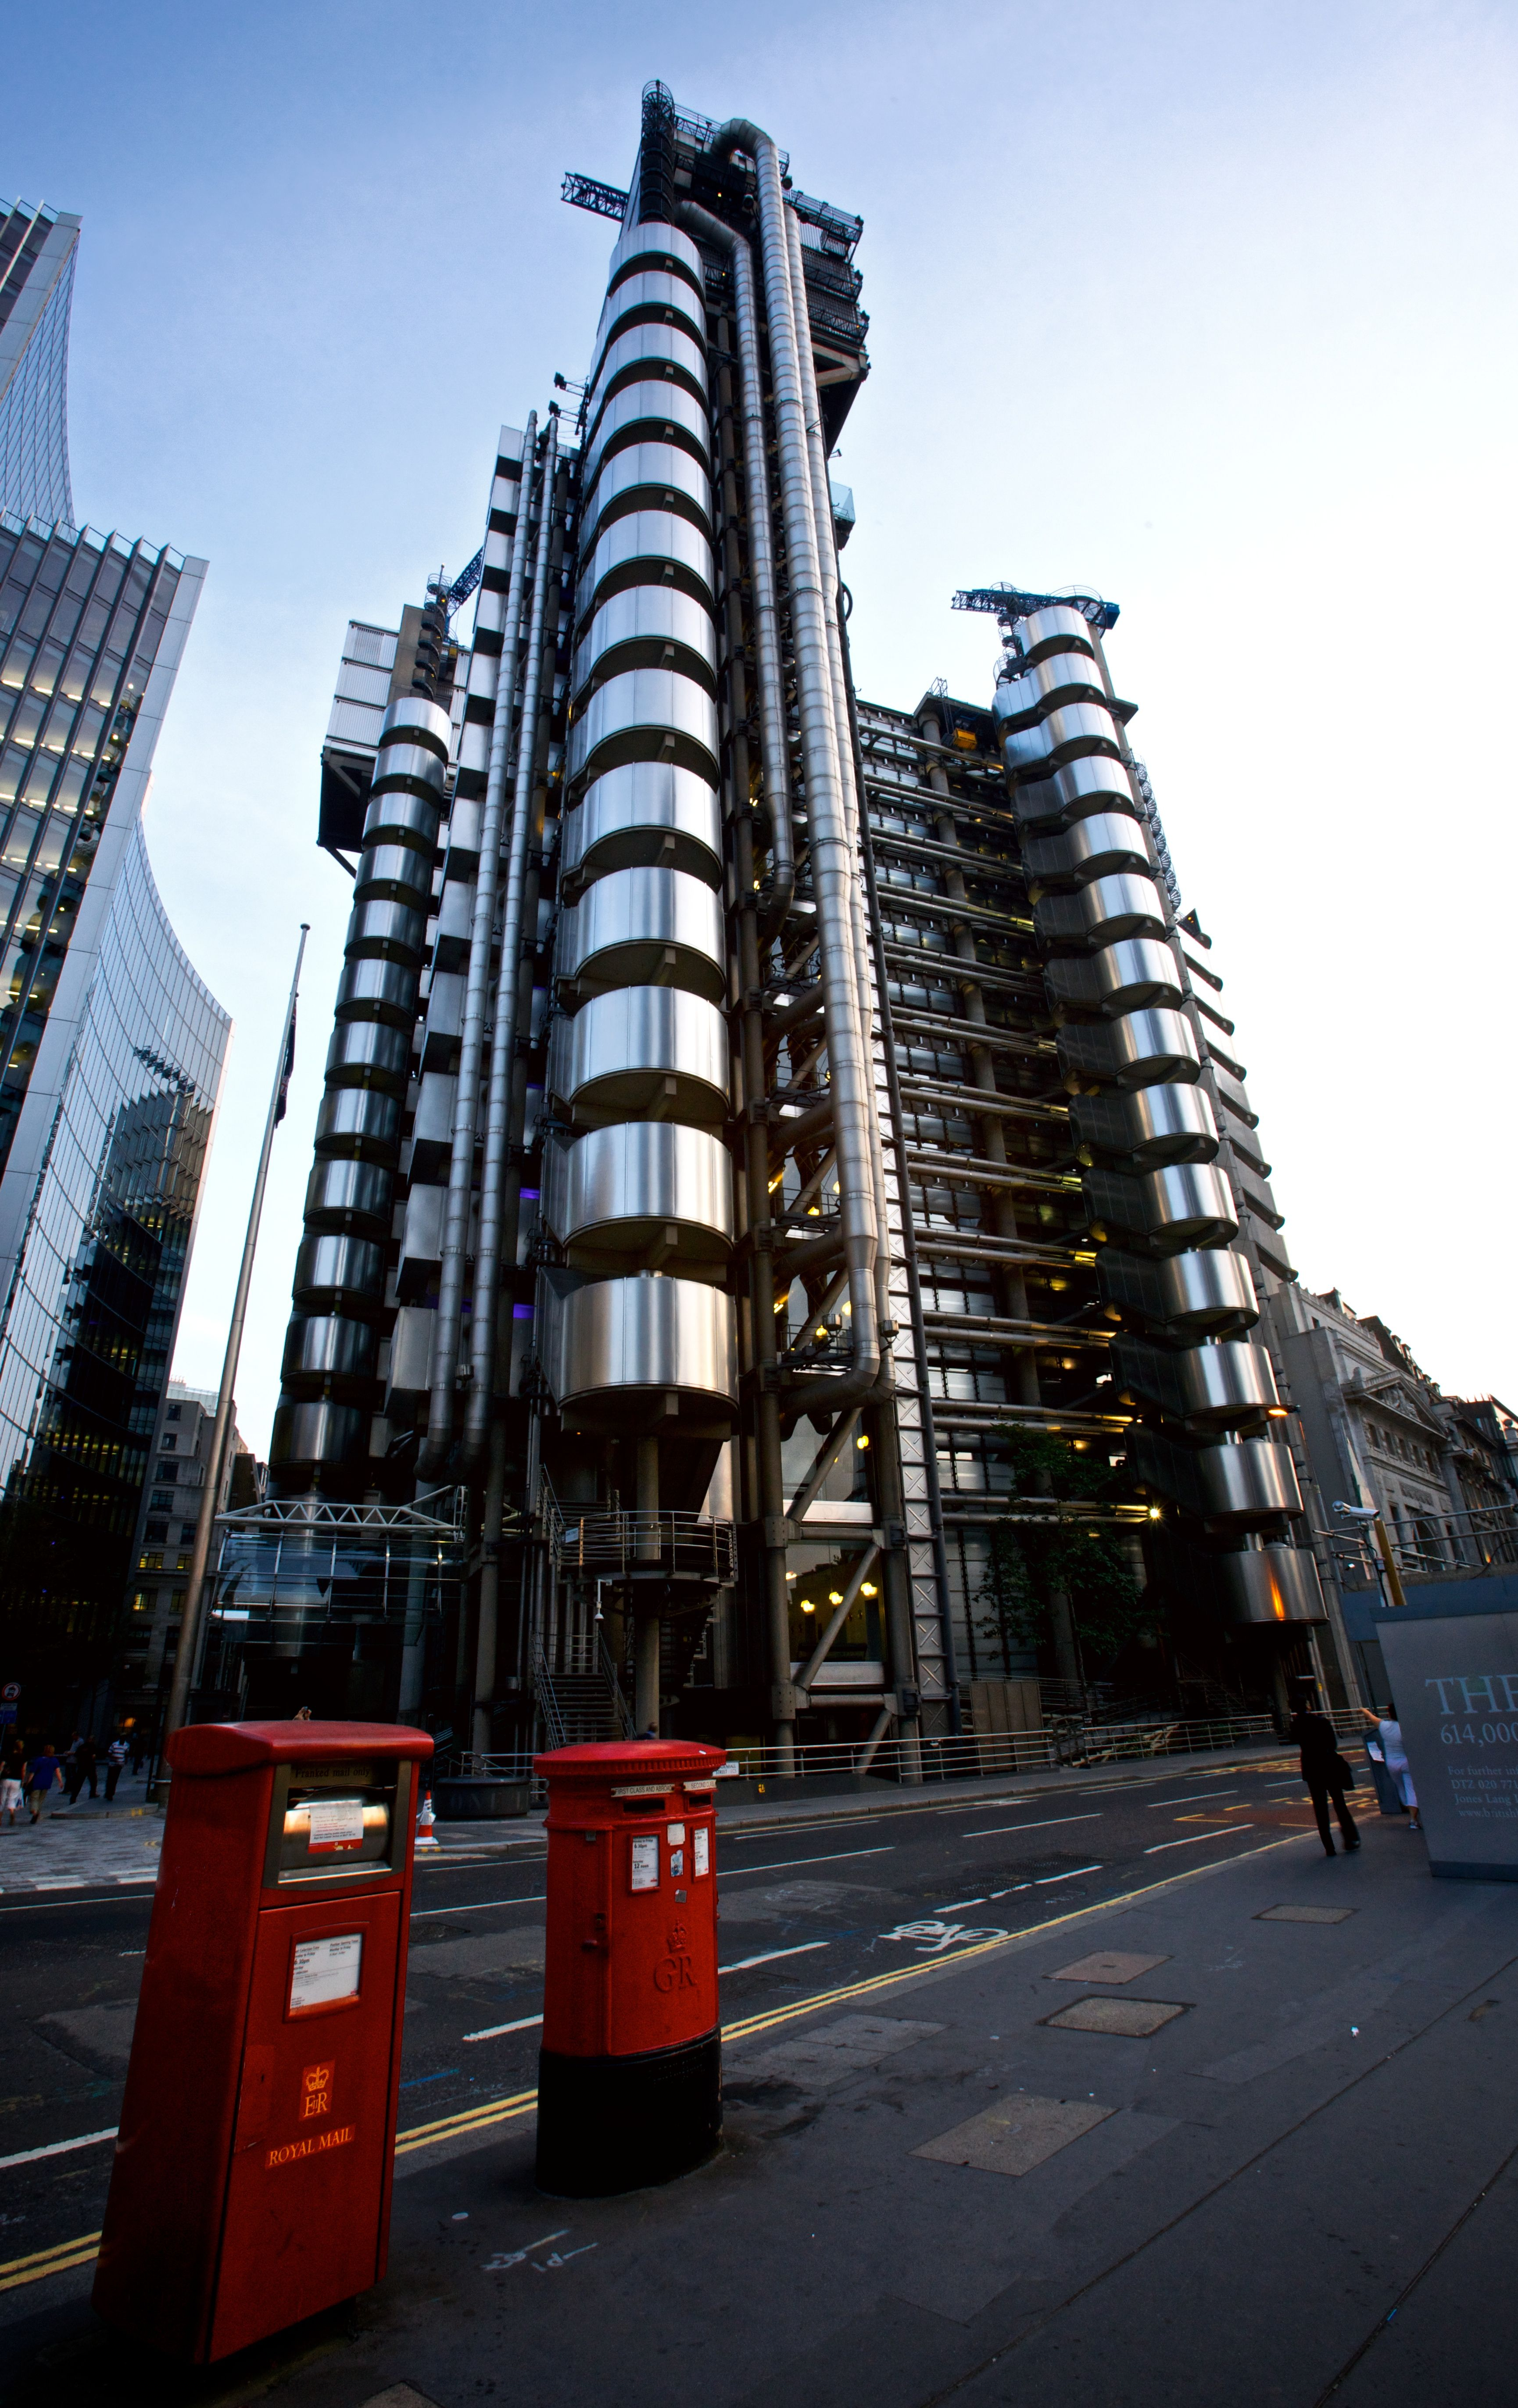 Rogers lloyd 39 s building from leadenhall street for Famous modern architecture buildings